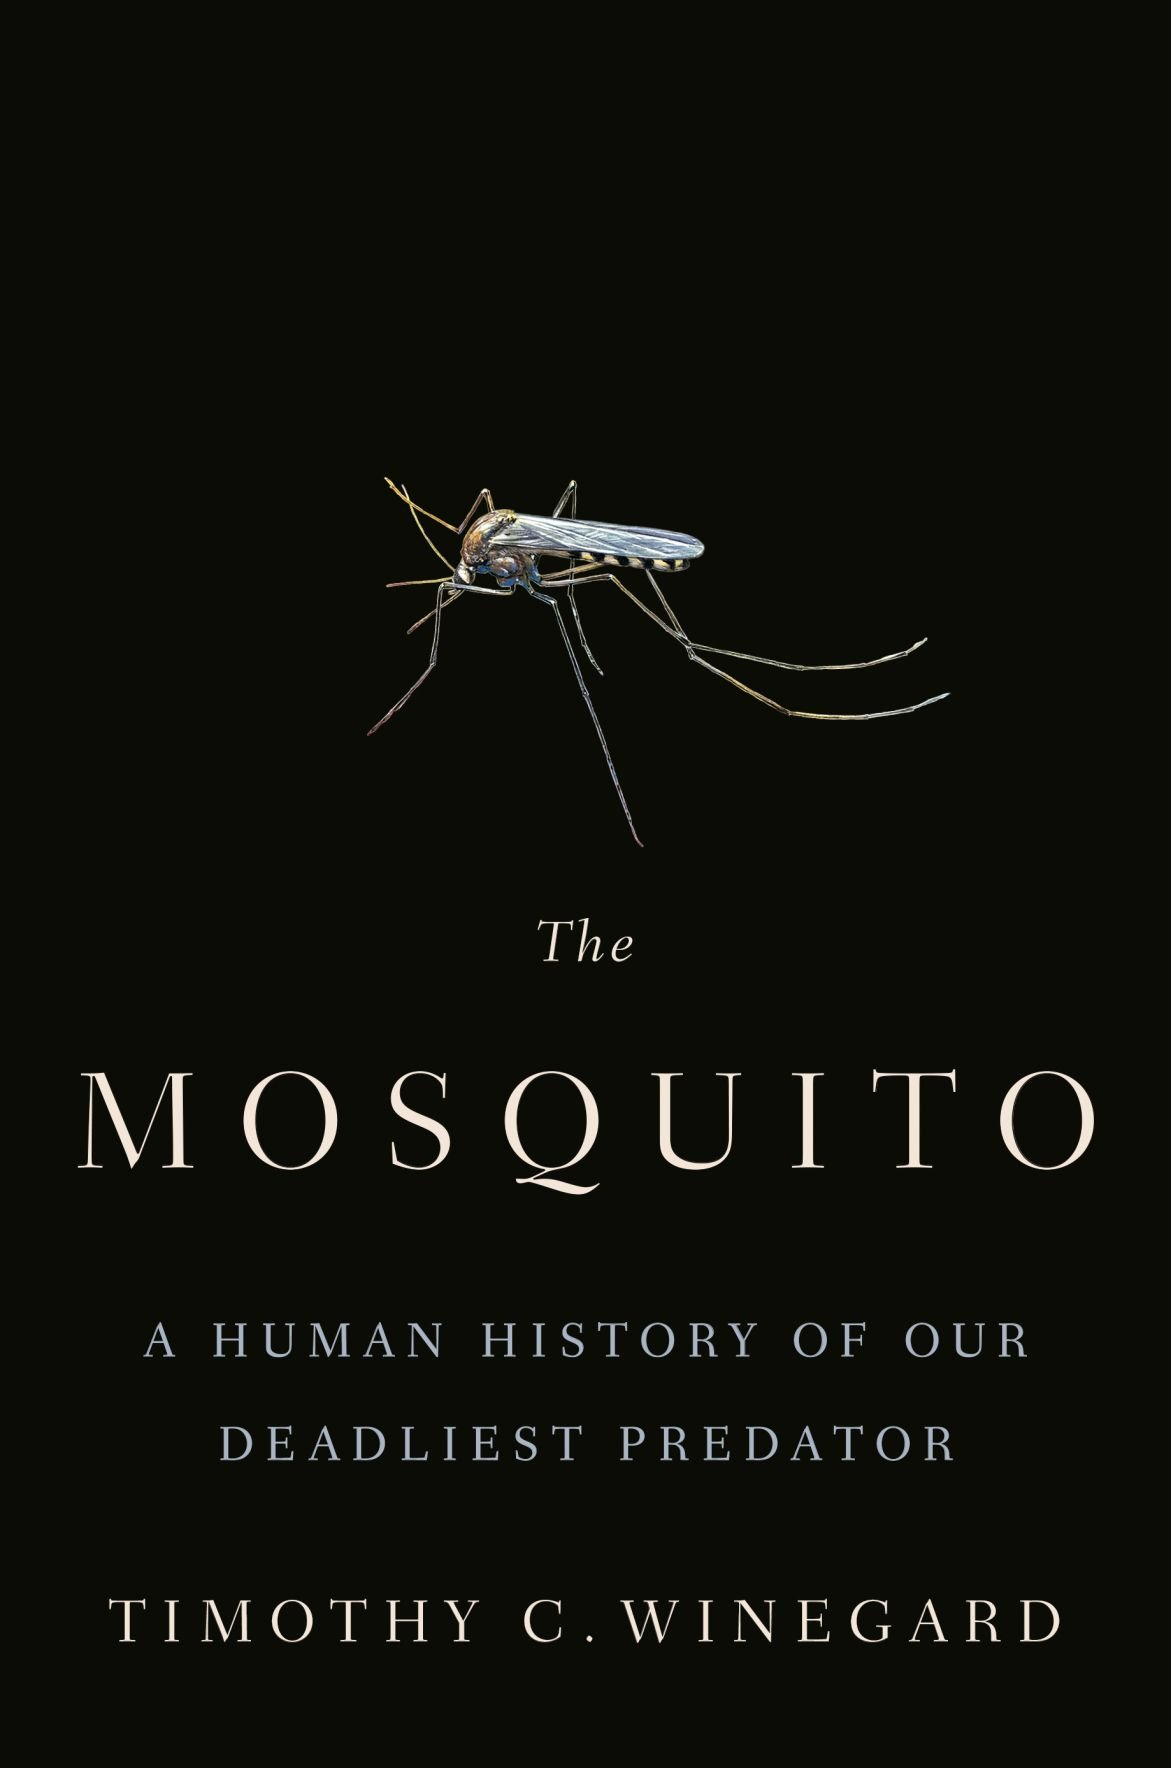 'The Mosquito' provides new perspective on human history